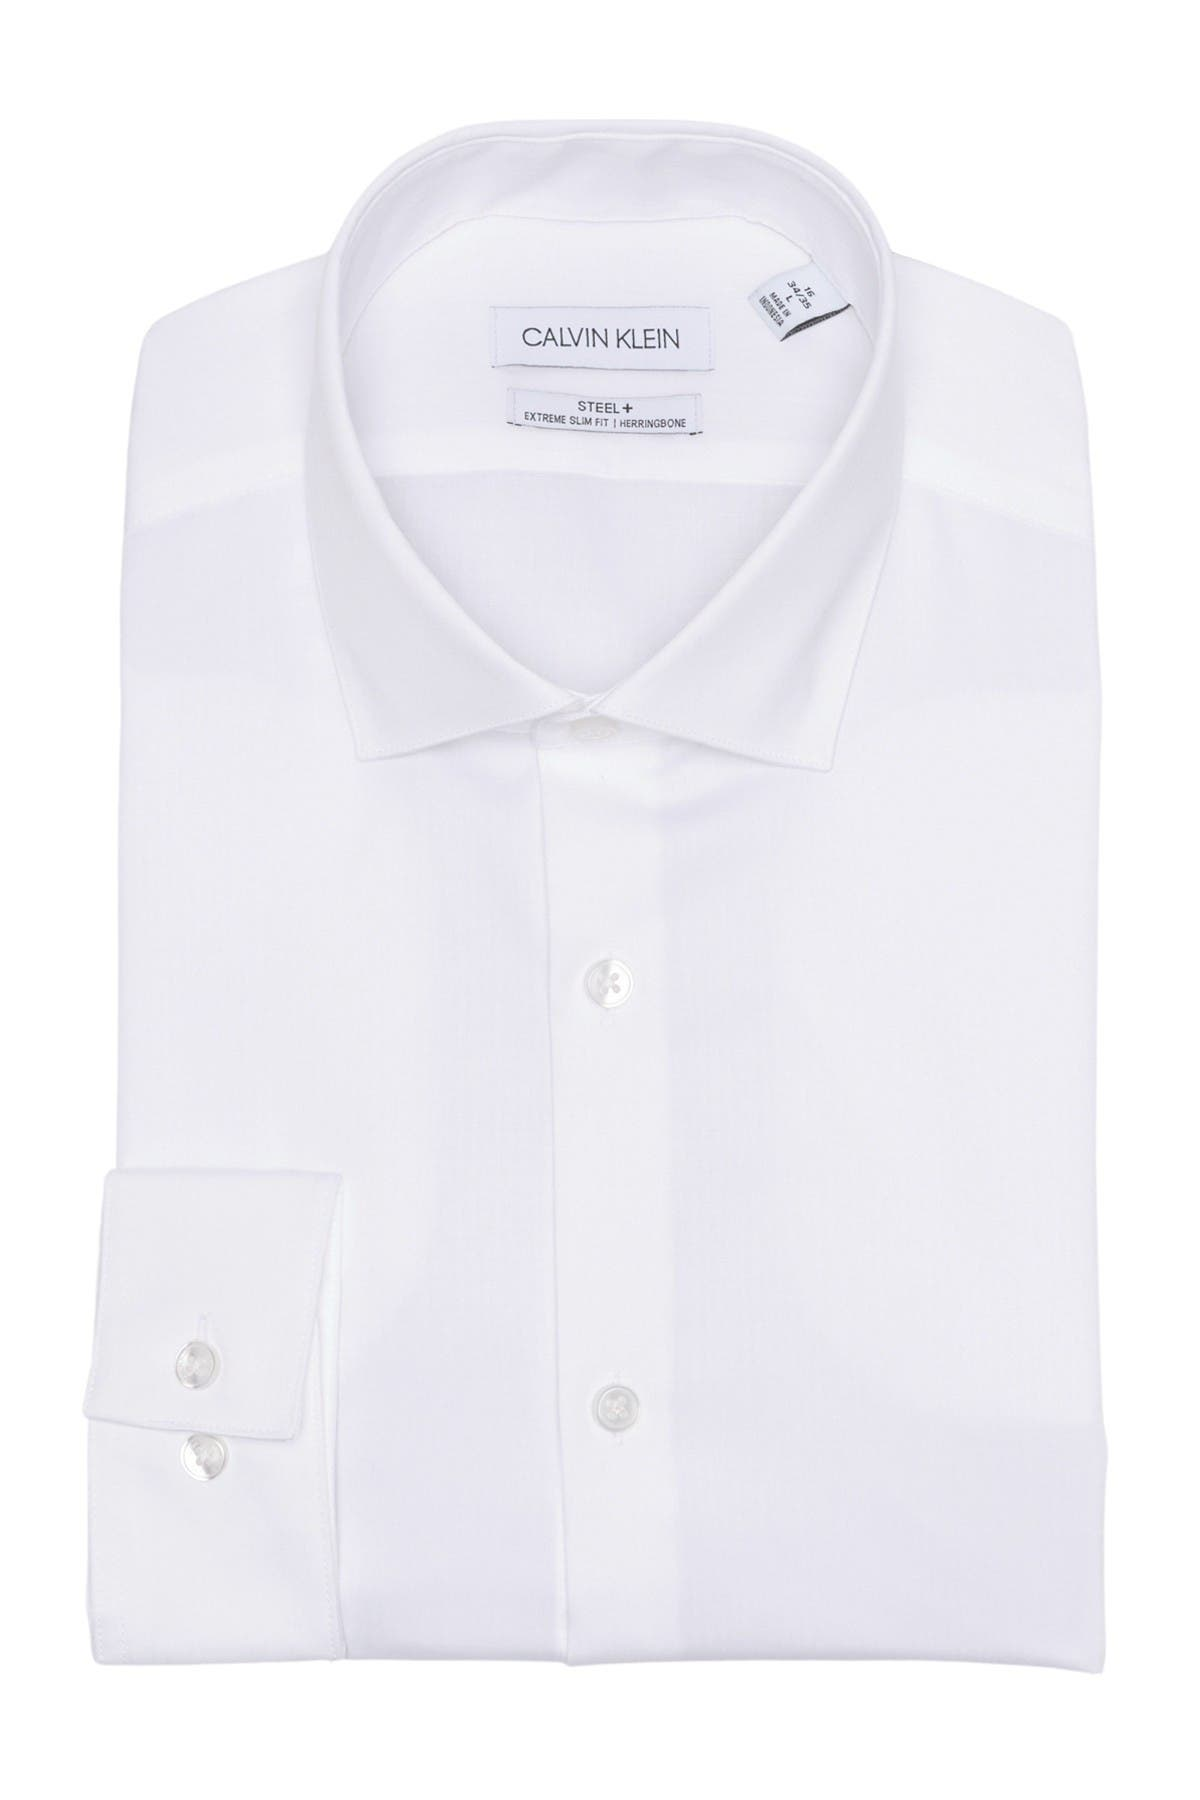 Image of Calvin Klein Steel Extreme Slim Fit Dress Shirt